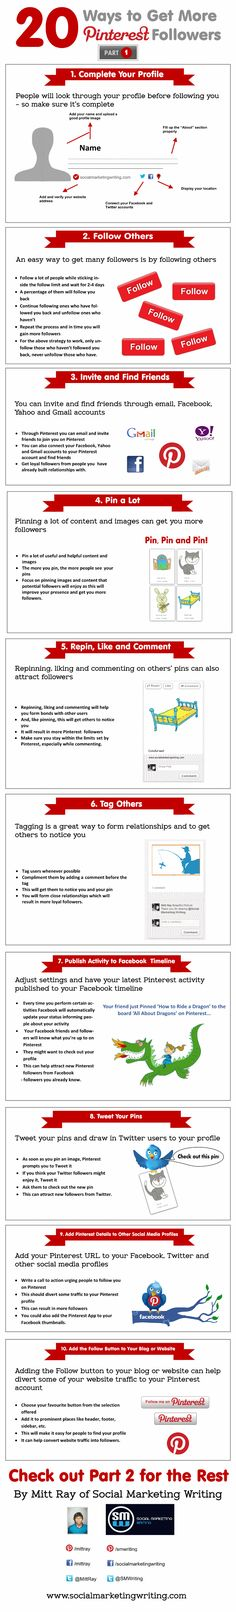 Increase Pinterest Followers1 20 Ways to Increase Pinterest Followers Infographic by @Social Worker Marketing Writing